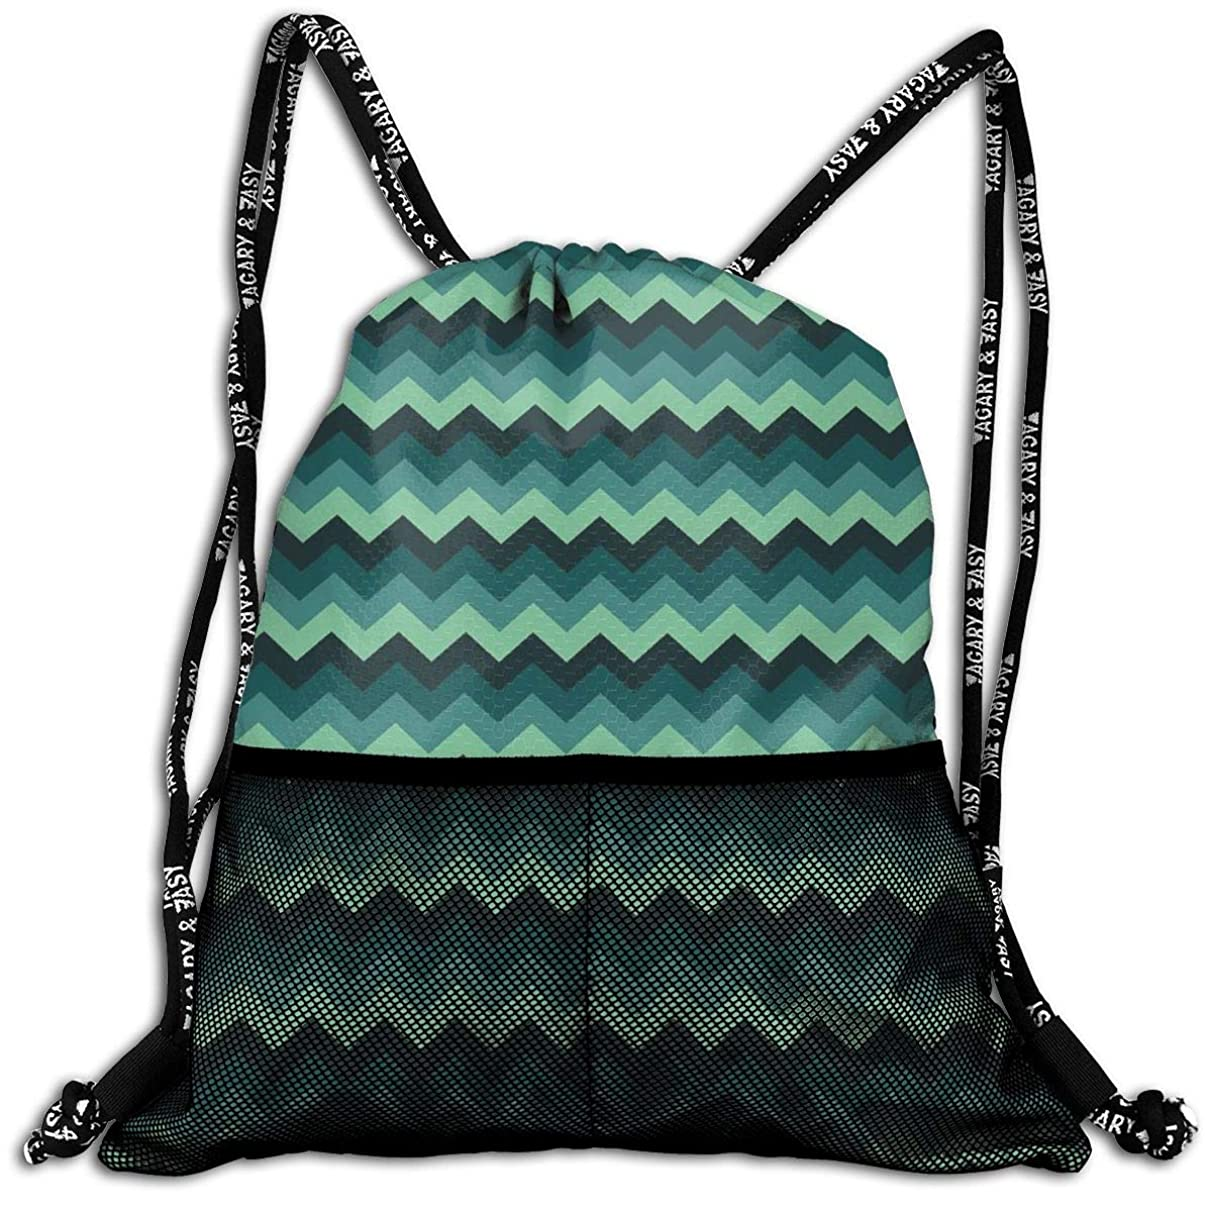 Drawstring Backpacks Bags,Expressionist Chevron Style Pattern Geometric Vibrant Colored Modern Artful,5 Liter Capacity,Adjustable